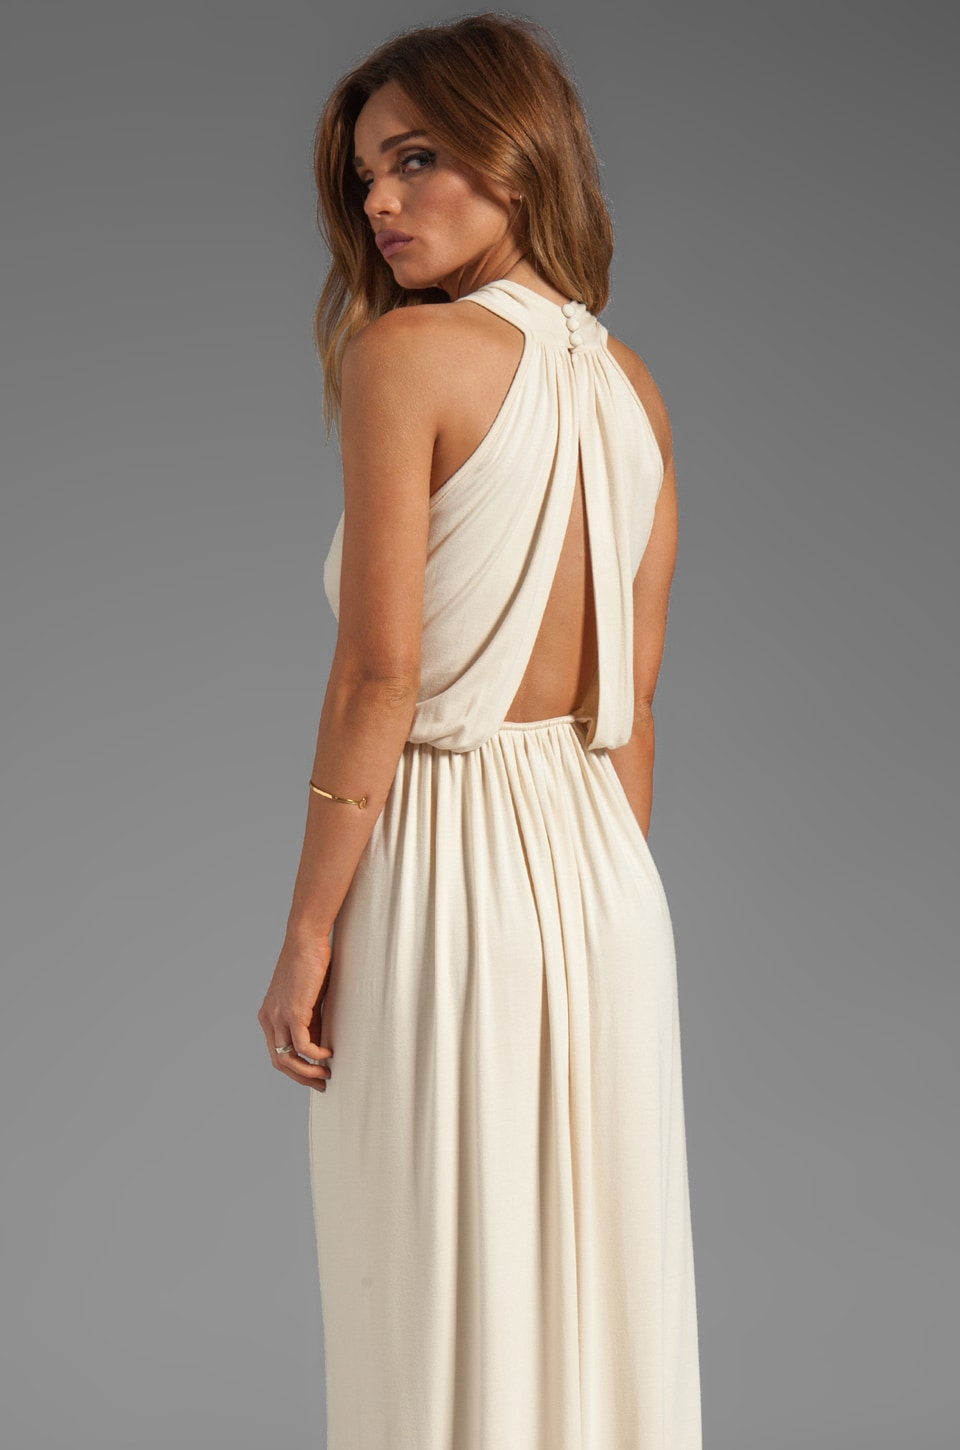 Rachel Pally Kasil Dress in Cream